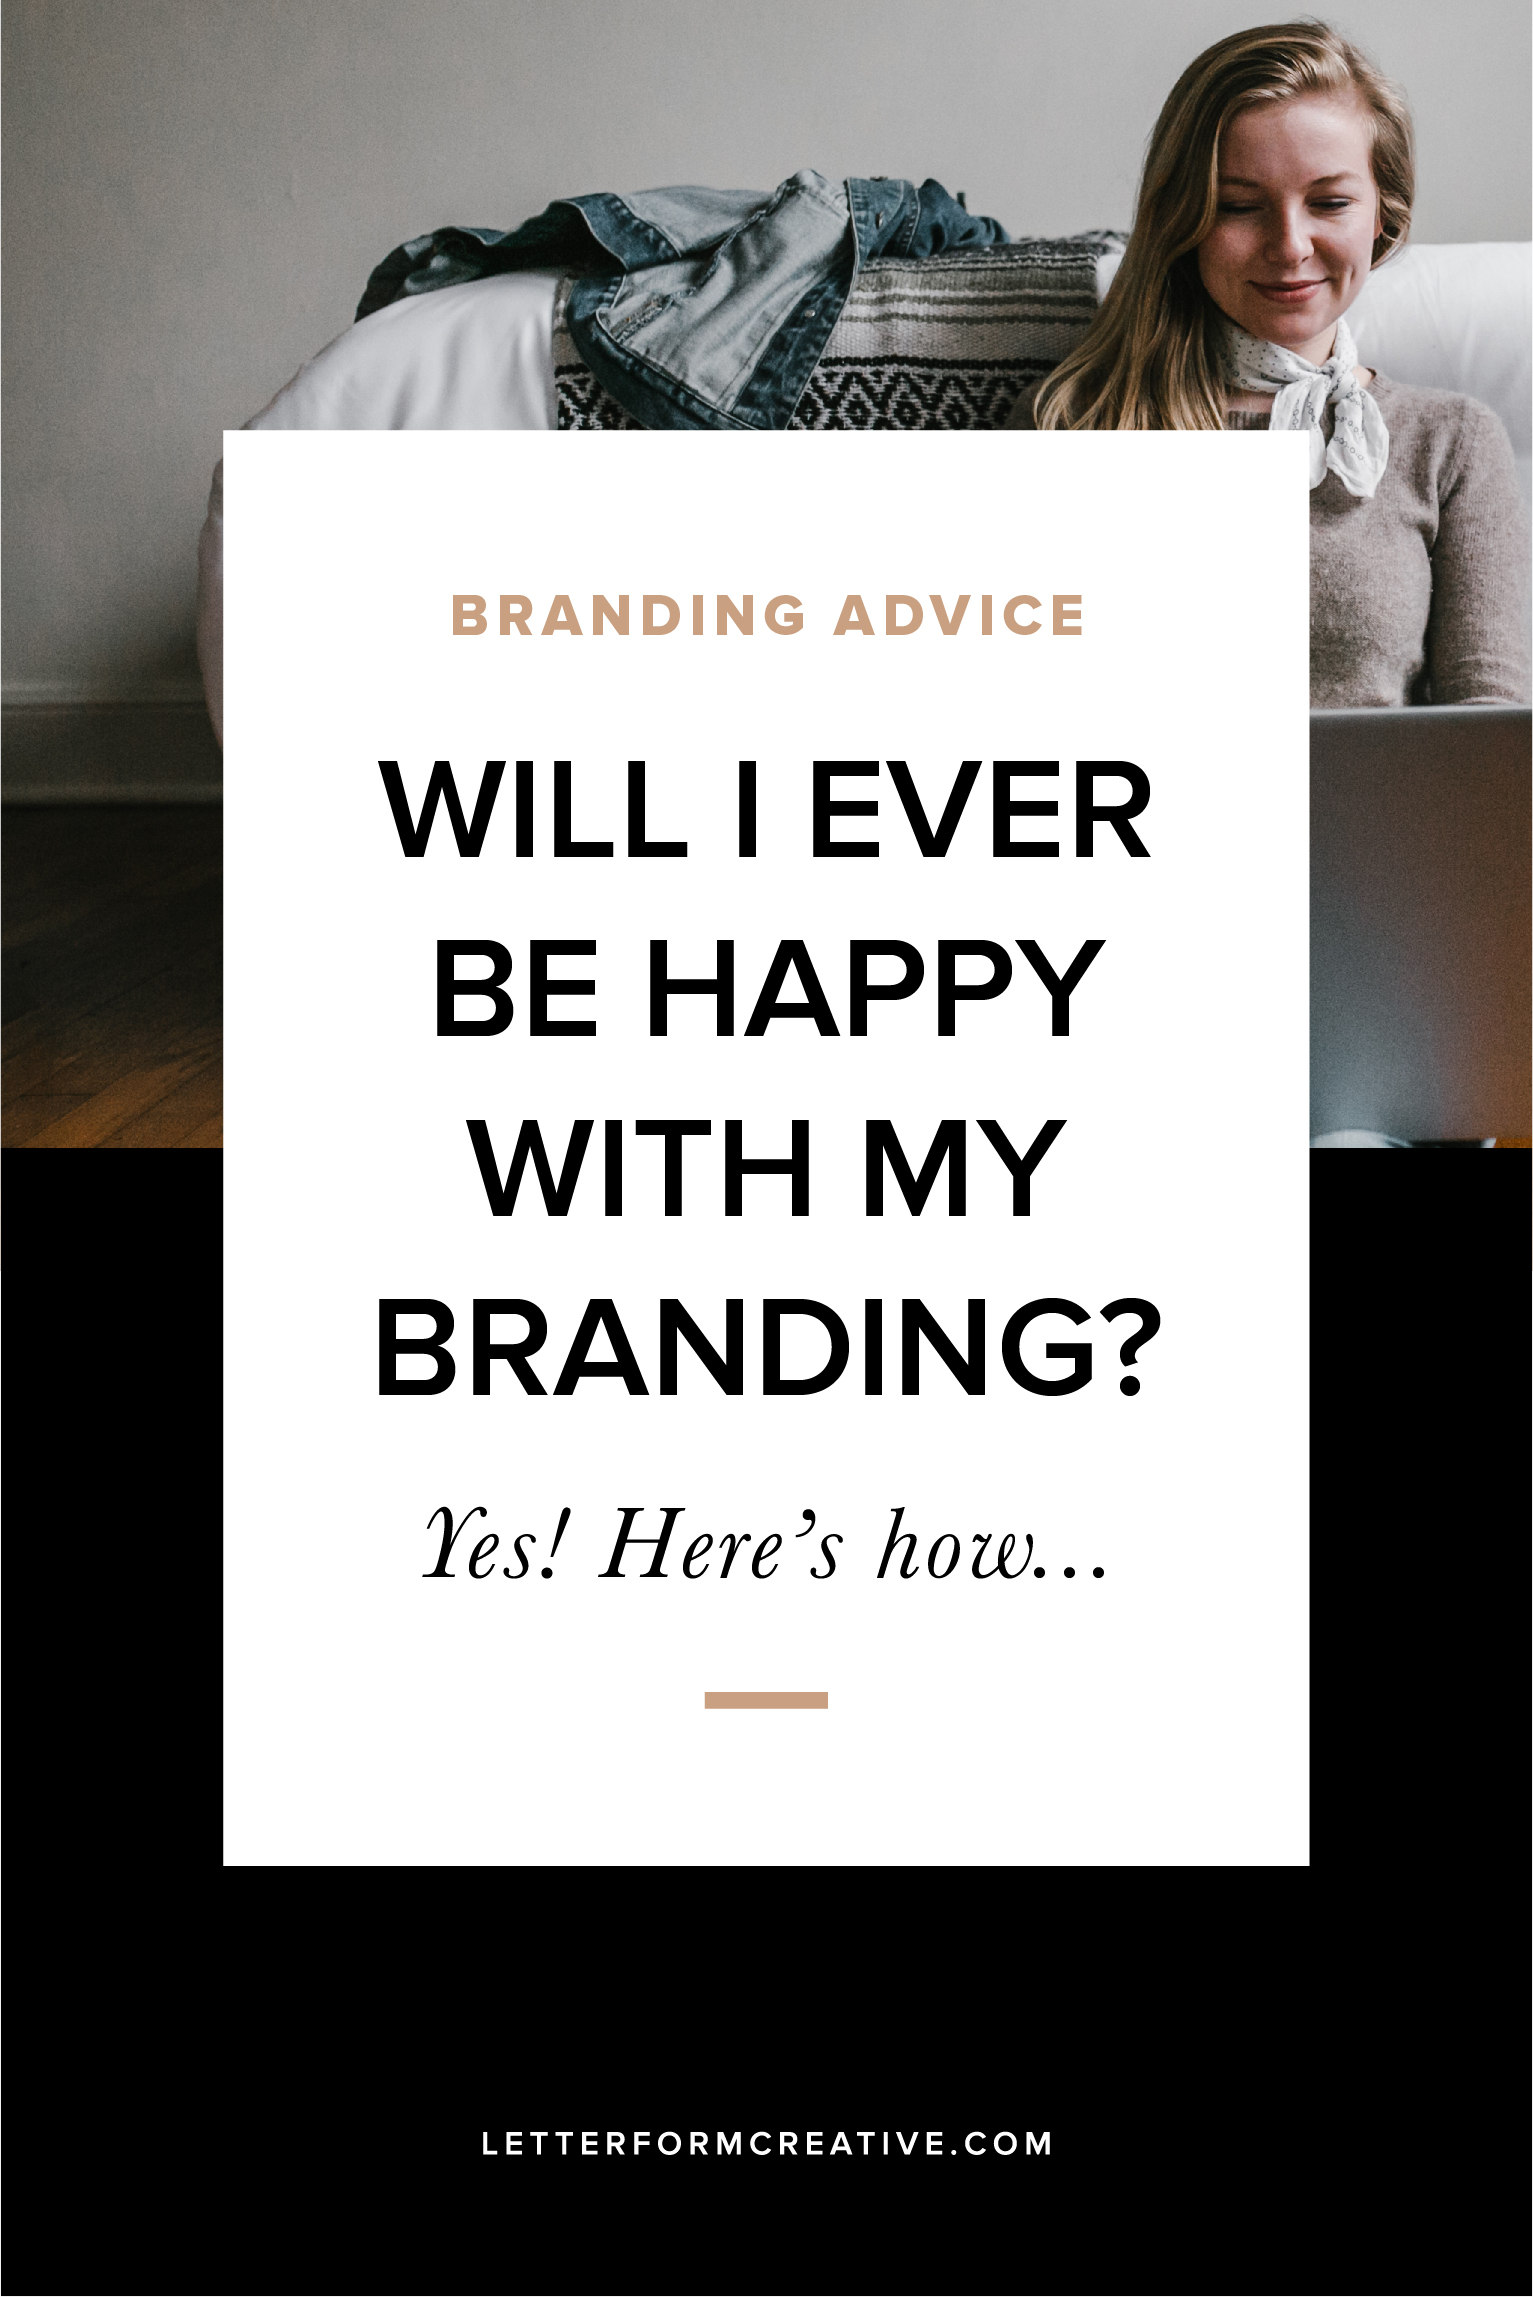 Hey small business owner, are you constantly changing your logo and tweaking your color palette, never quite happy with your branding? You're not alone! Hear from a professional designer how you can finally be content with your brand identity! This post covers DIYed branding, professional branding, and even re-branidng. Click through to finally find contentment with your branding!